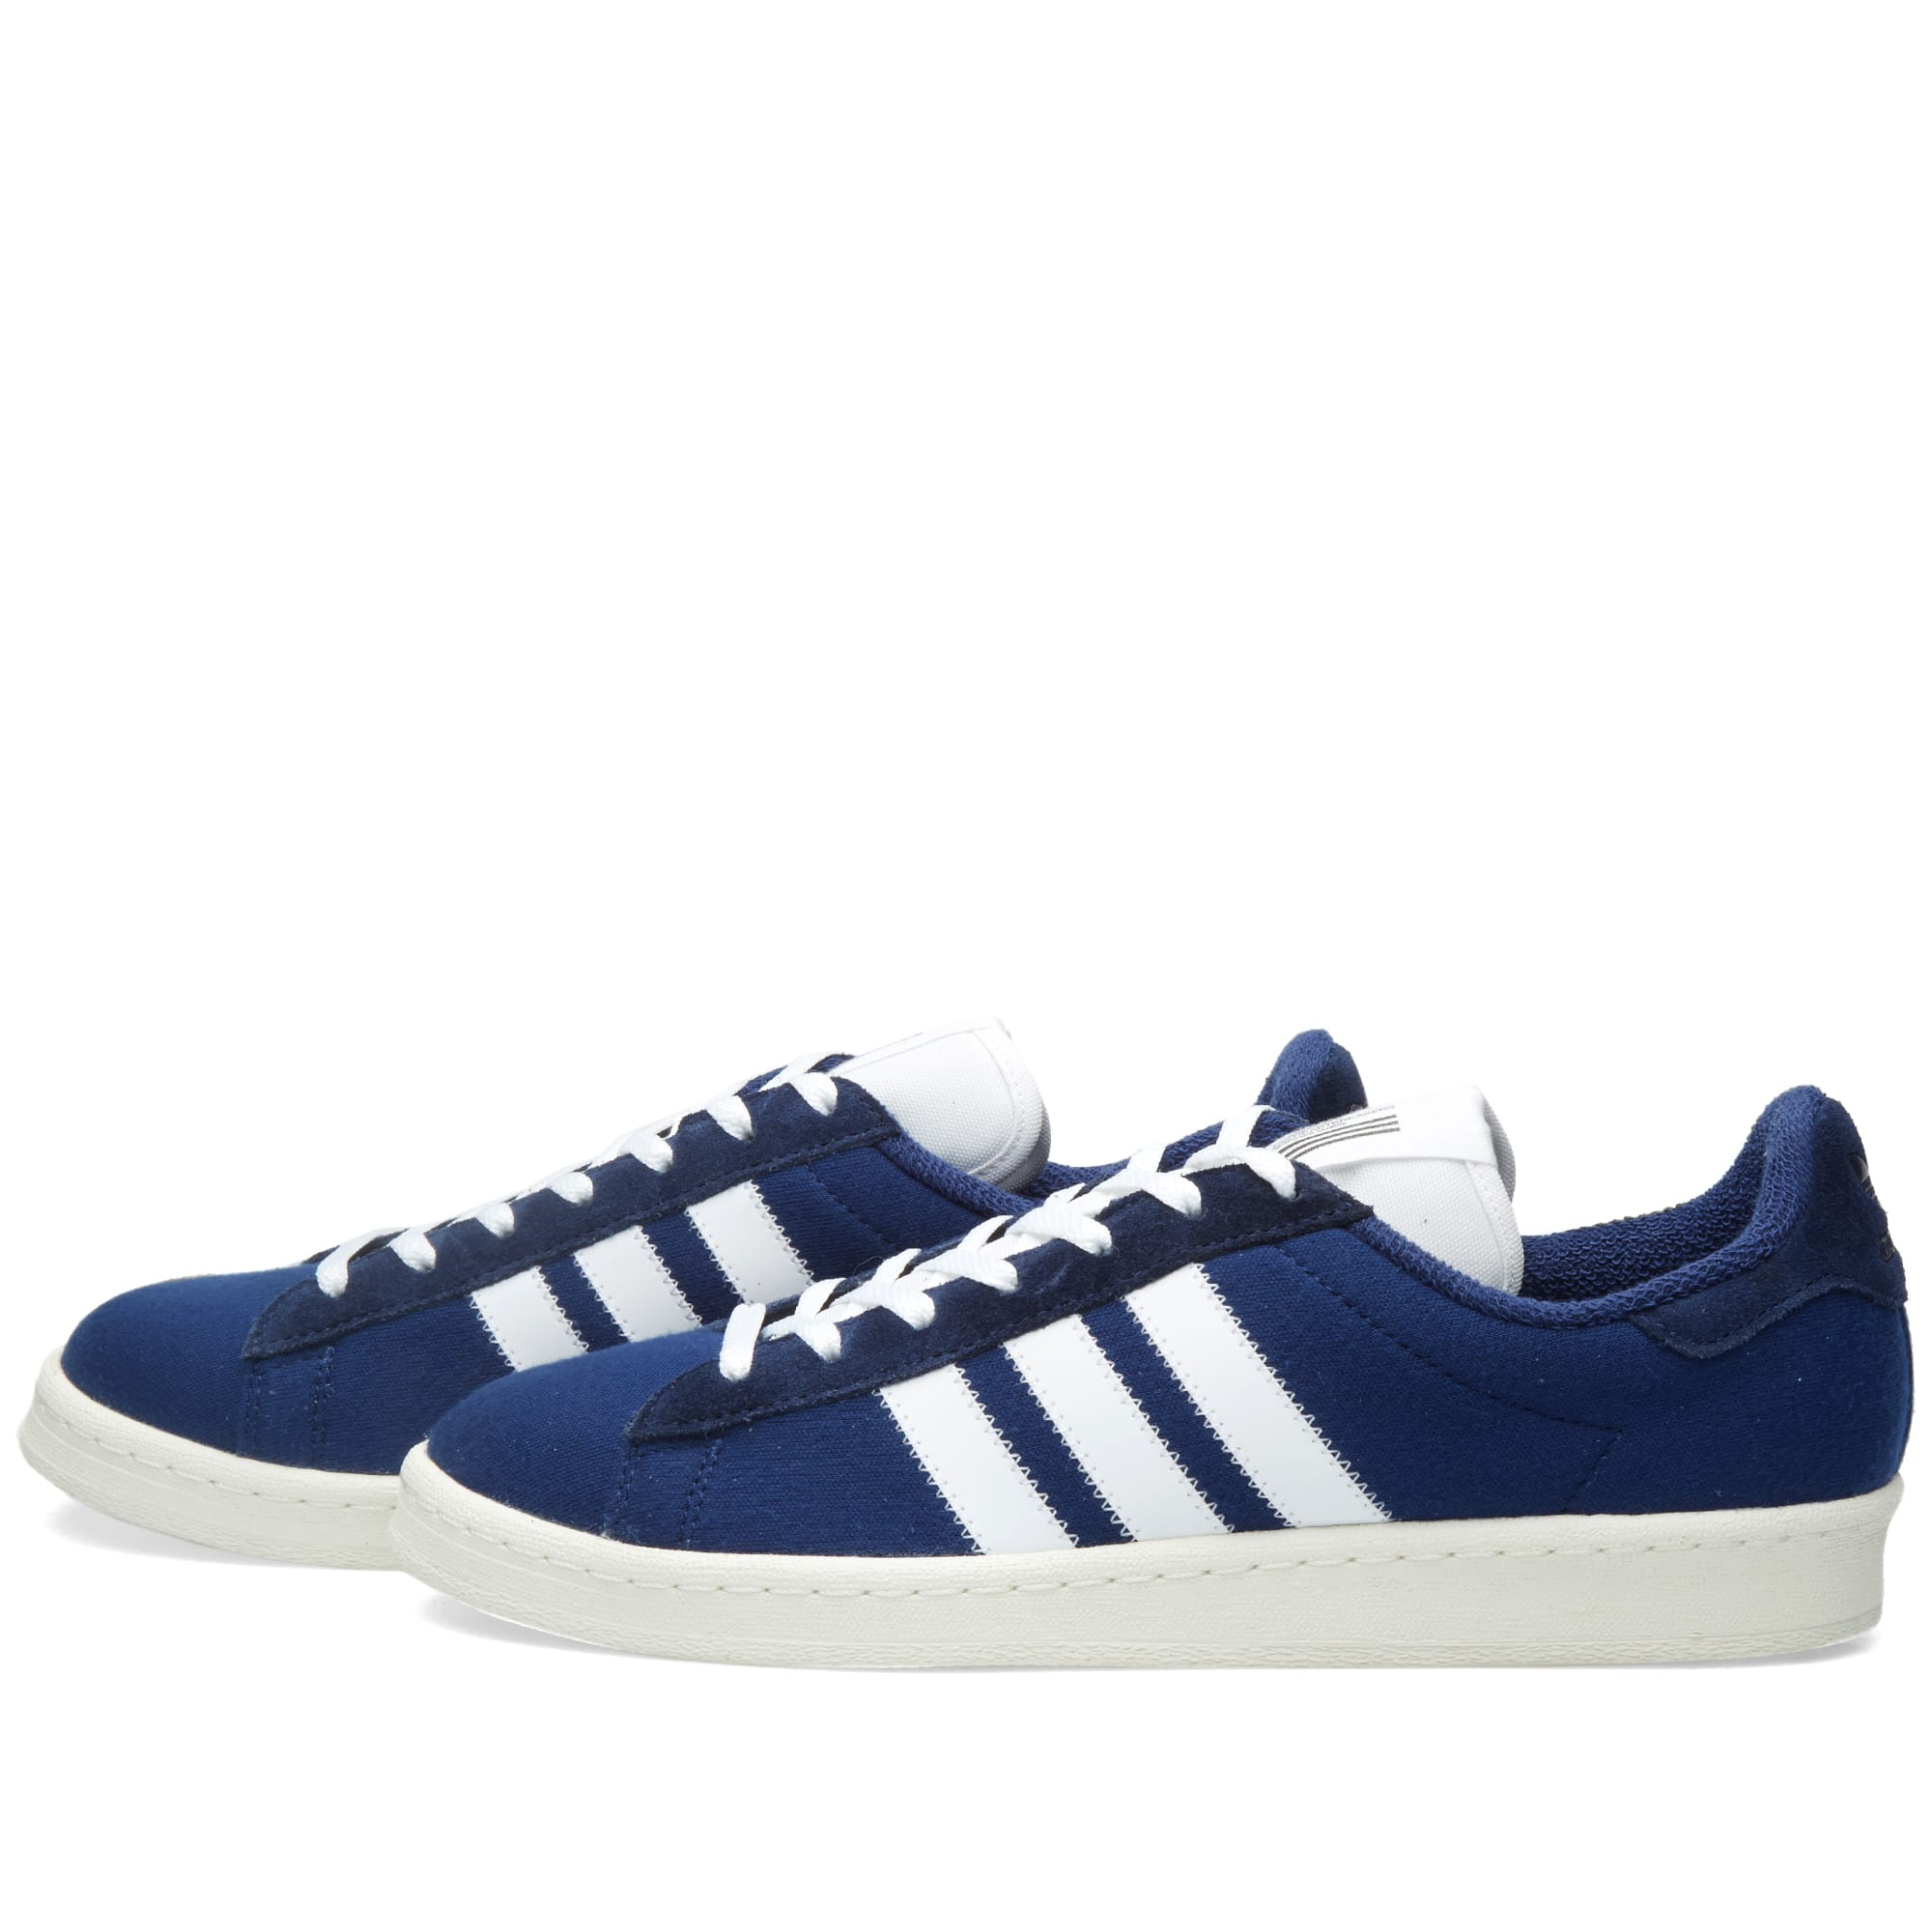 tout neuf a3c87 eafea Adidas x Bedwin & The Heartbreakers Campus 80s